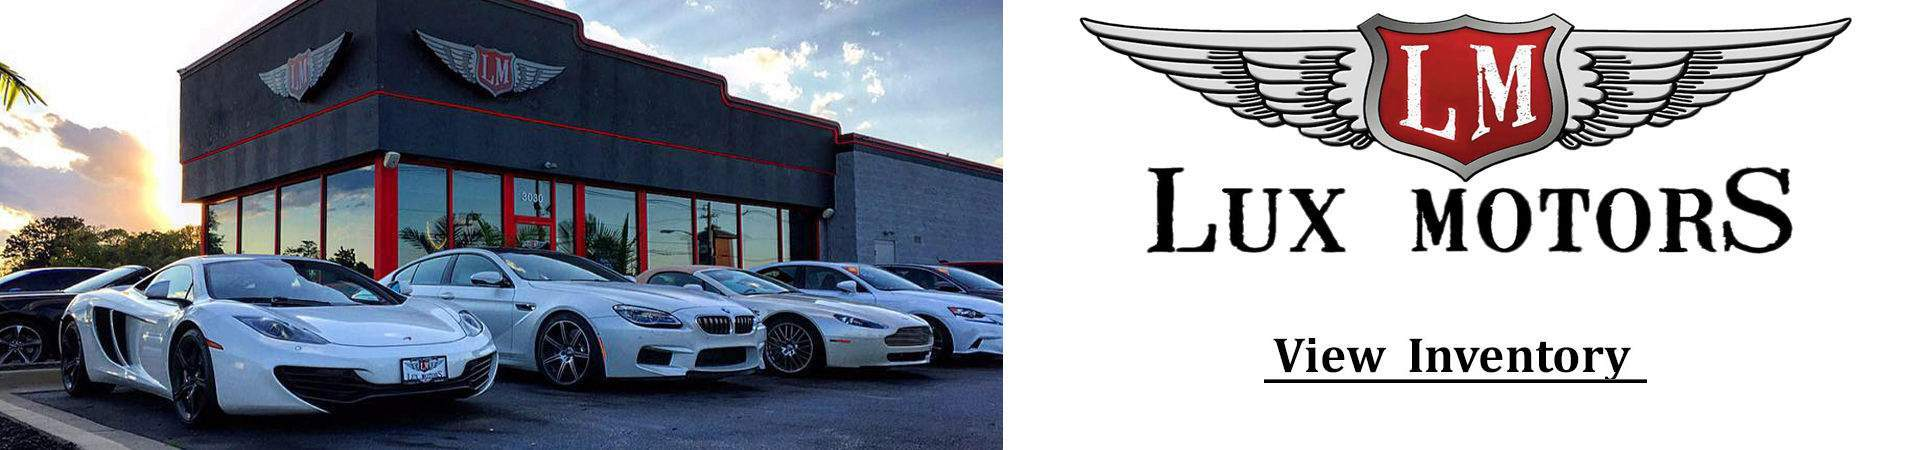 used car dealership evansville in lux motors